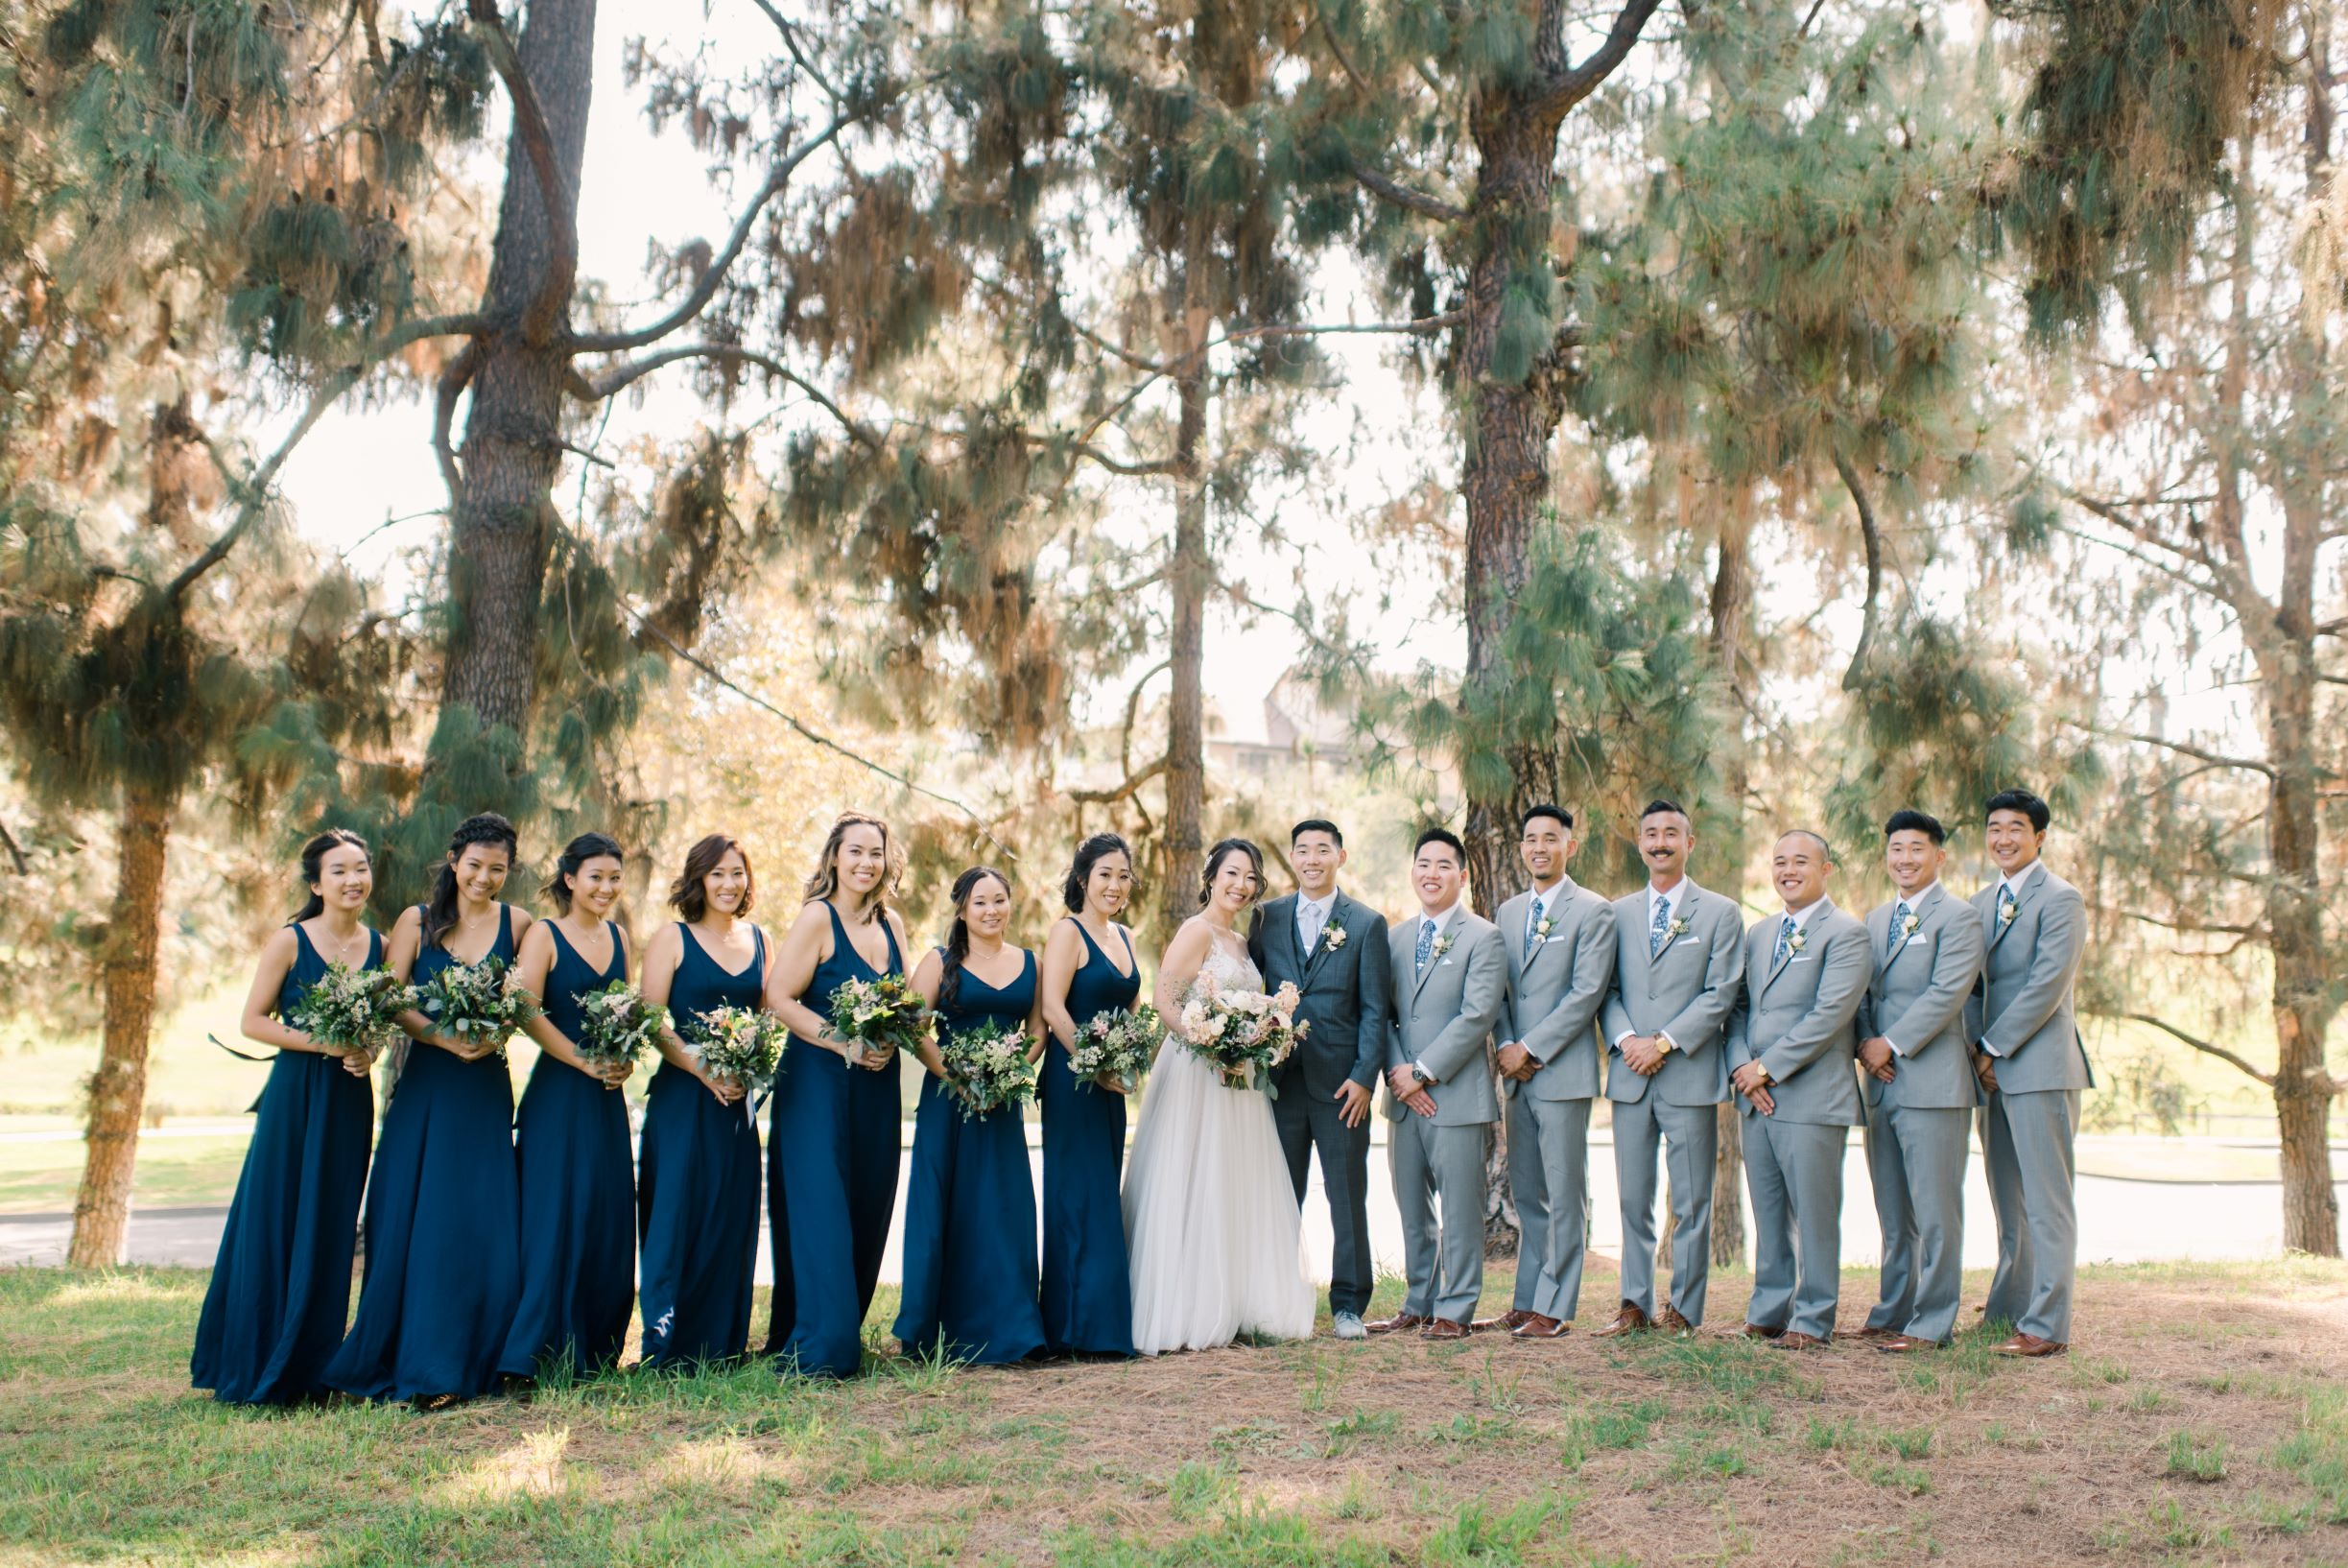 Ally Jeff Married - Carissa Woo Photography-171.jpg